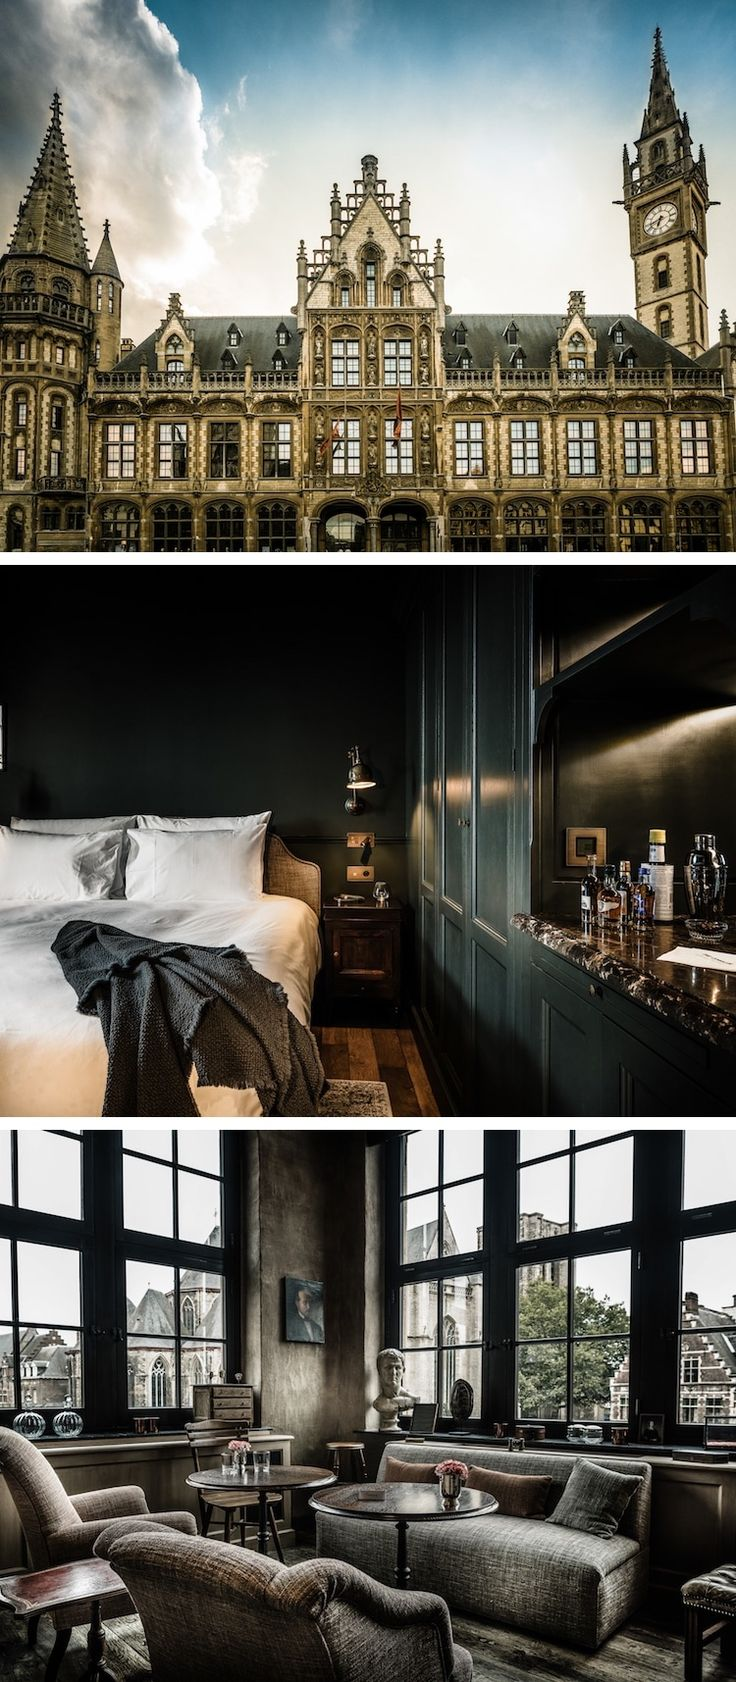 The 25 best post office hotel ideas on pinterest for Interior design 06877